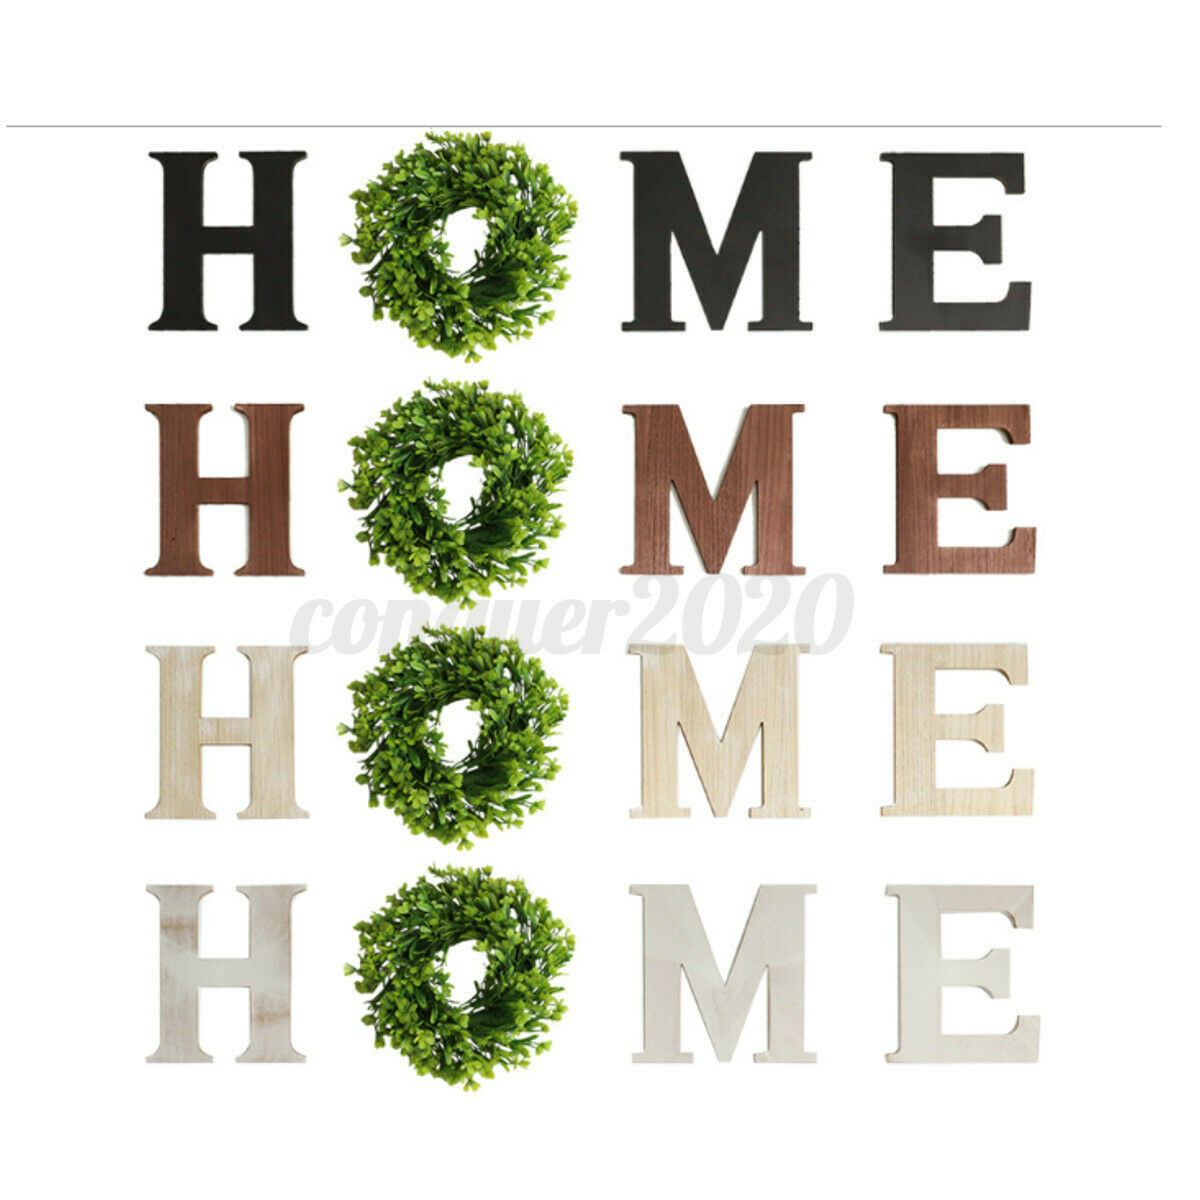 Memories Wooden Sign Home Wedding Rustic Wall Art Home Decoration Black For Sale Online Ebay